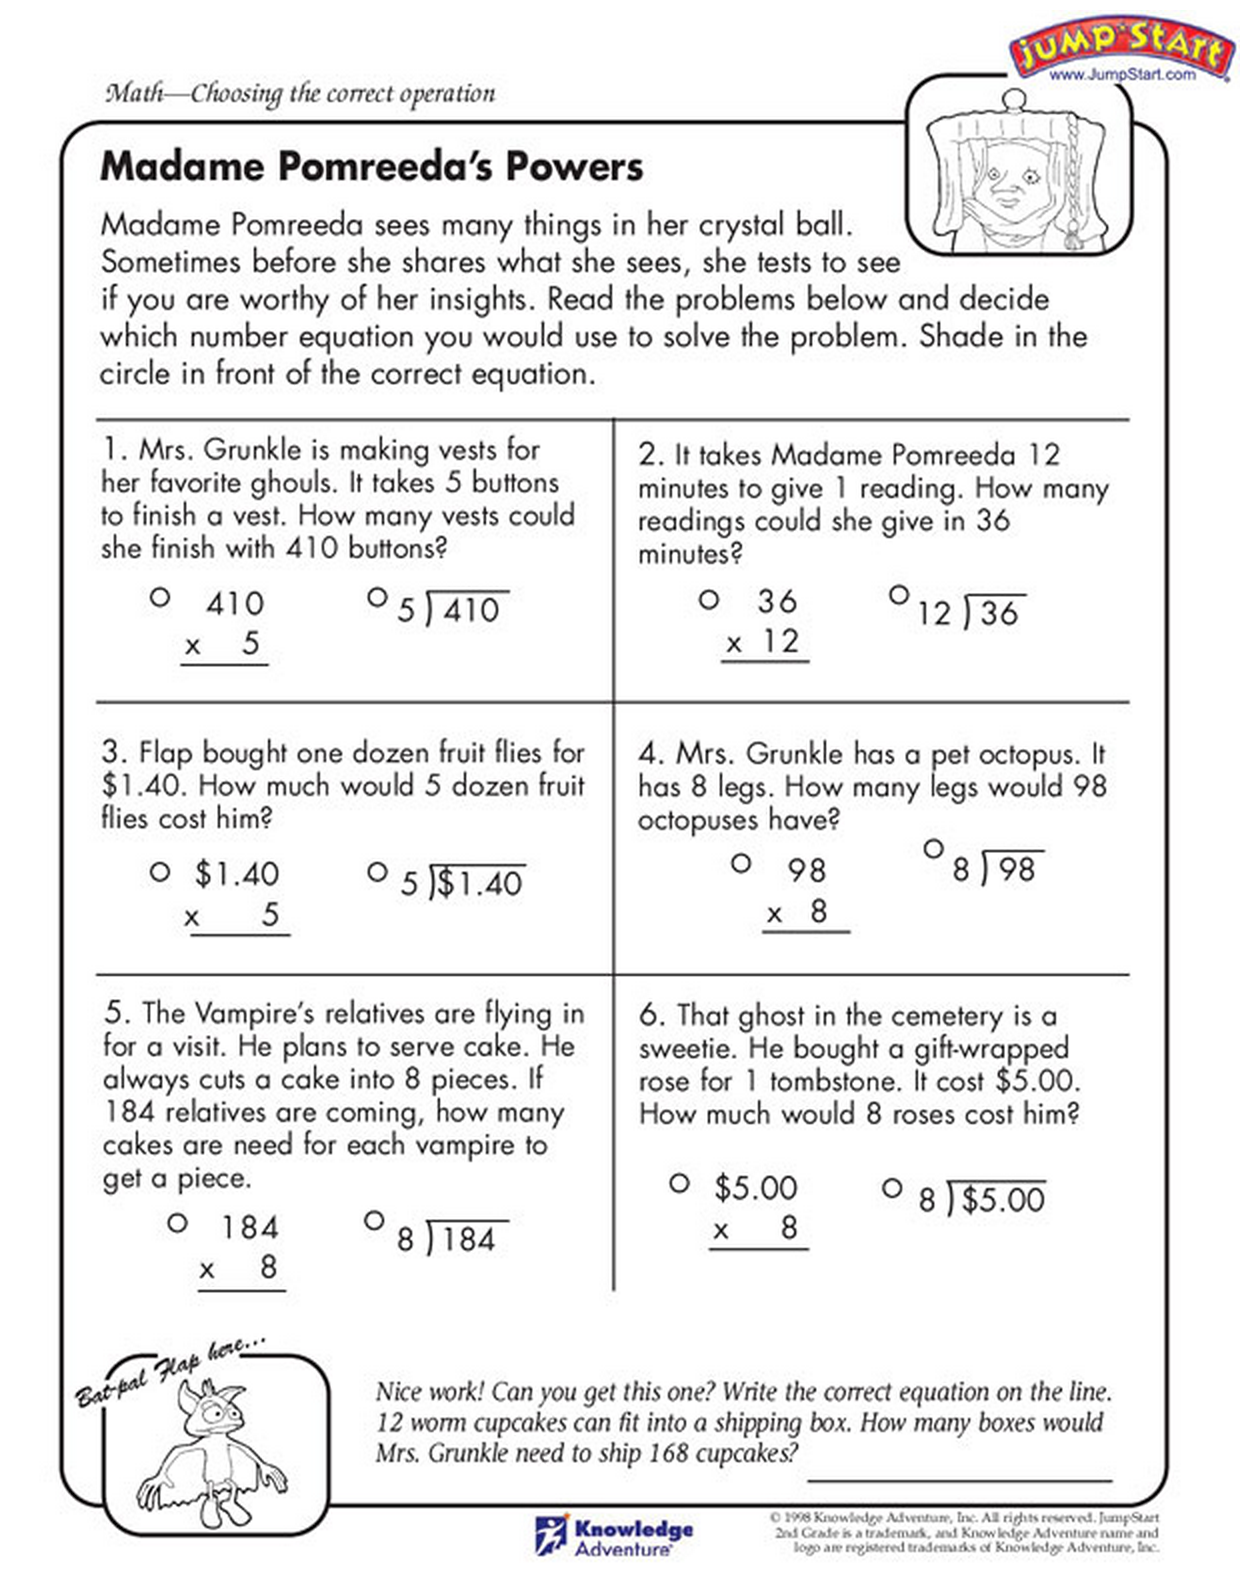 math 126 week 3 assignment project 2